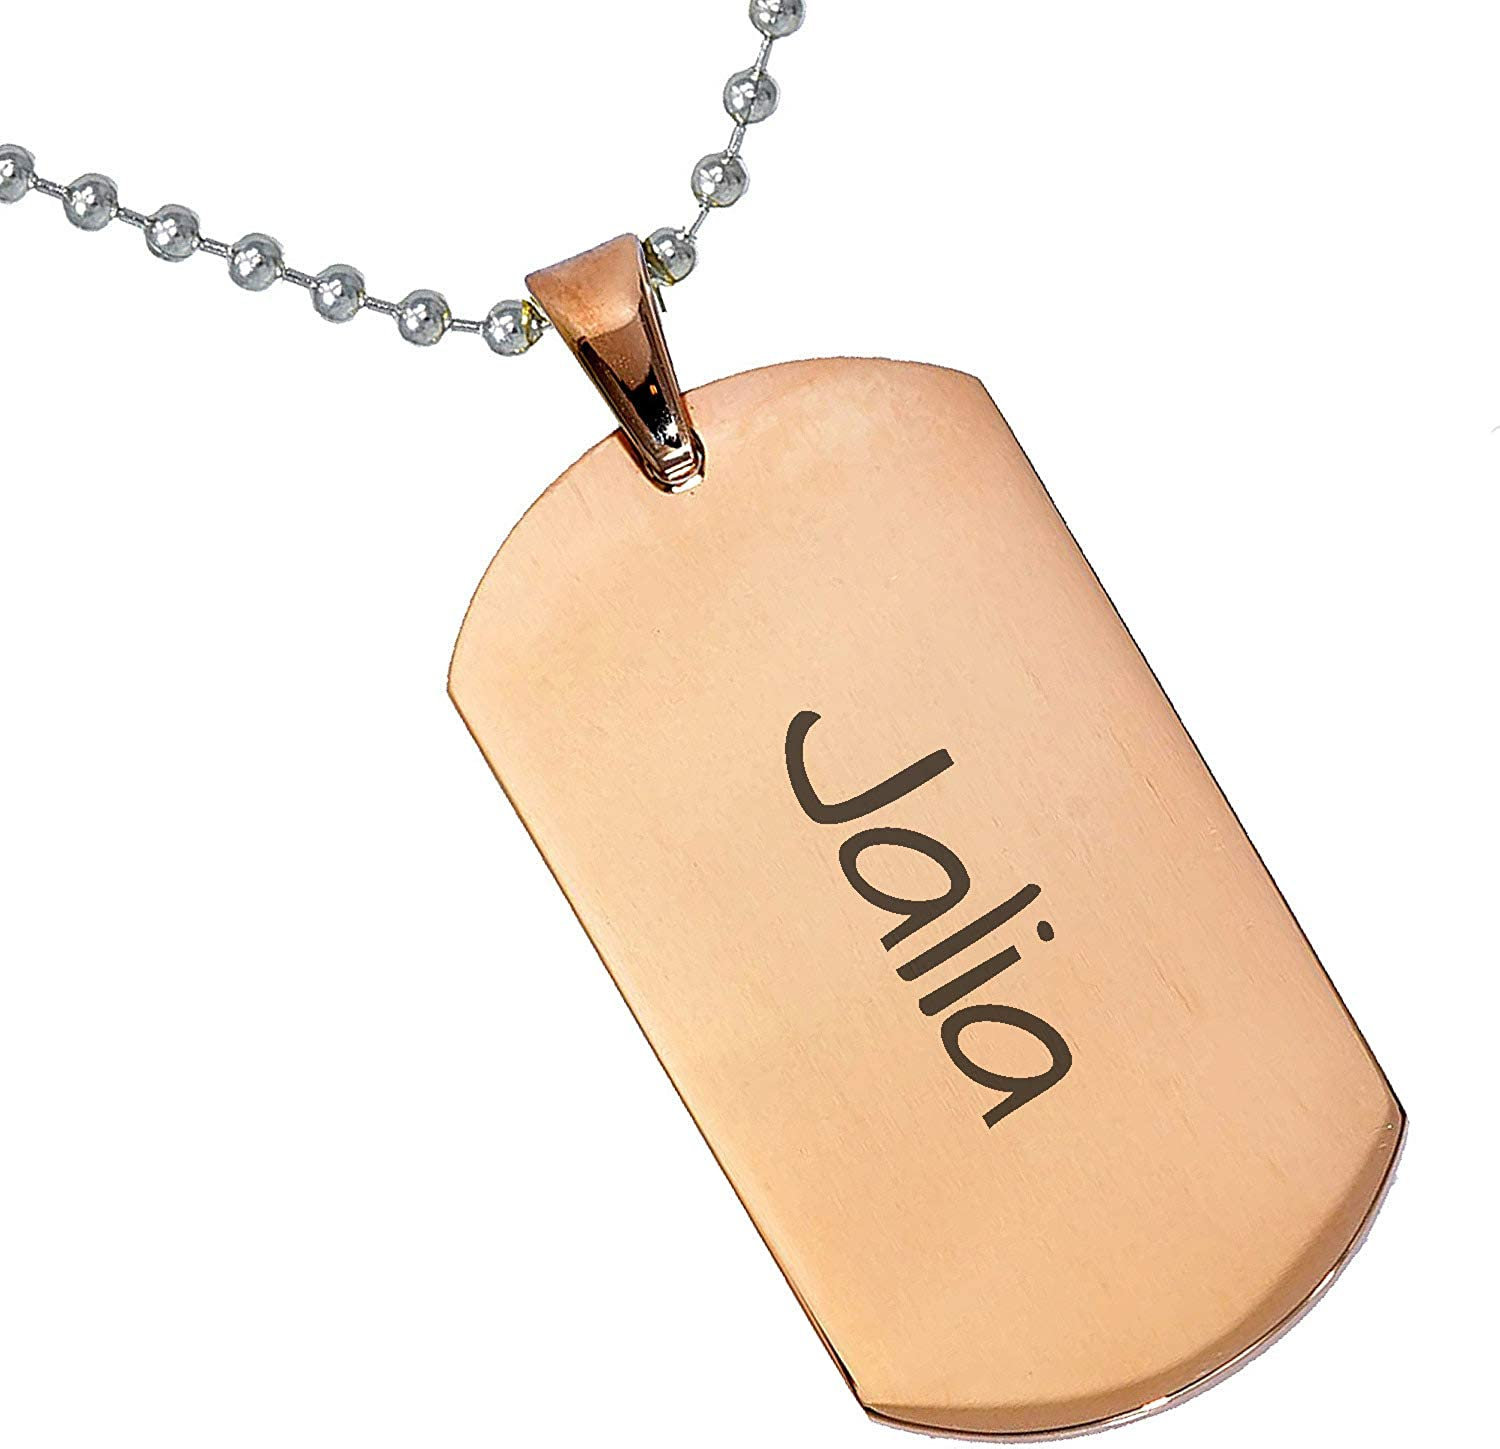 Stainless Steel Silver Gold Black Rose Gold Color Baby Name Jalia Engraved Personalized Gifts For Son Daughter Boyfriend Girlfriend Initial Customizable Pendant Necklace Dog Tags 24 Ball Chain